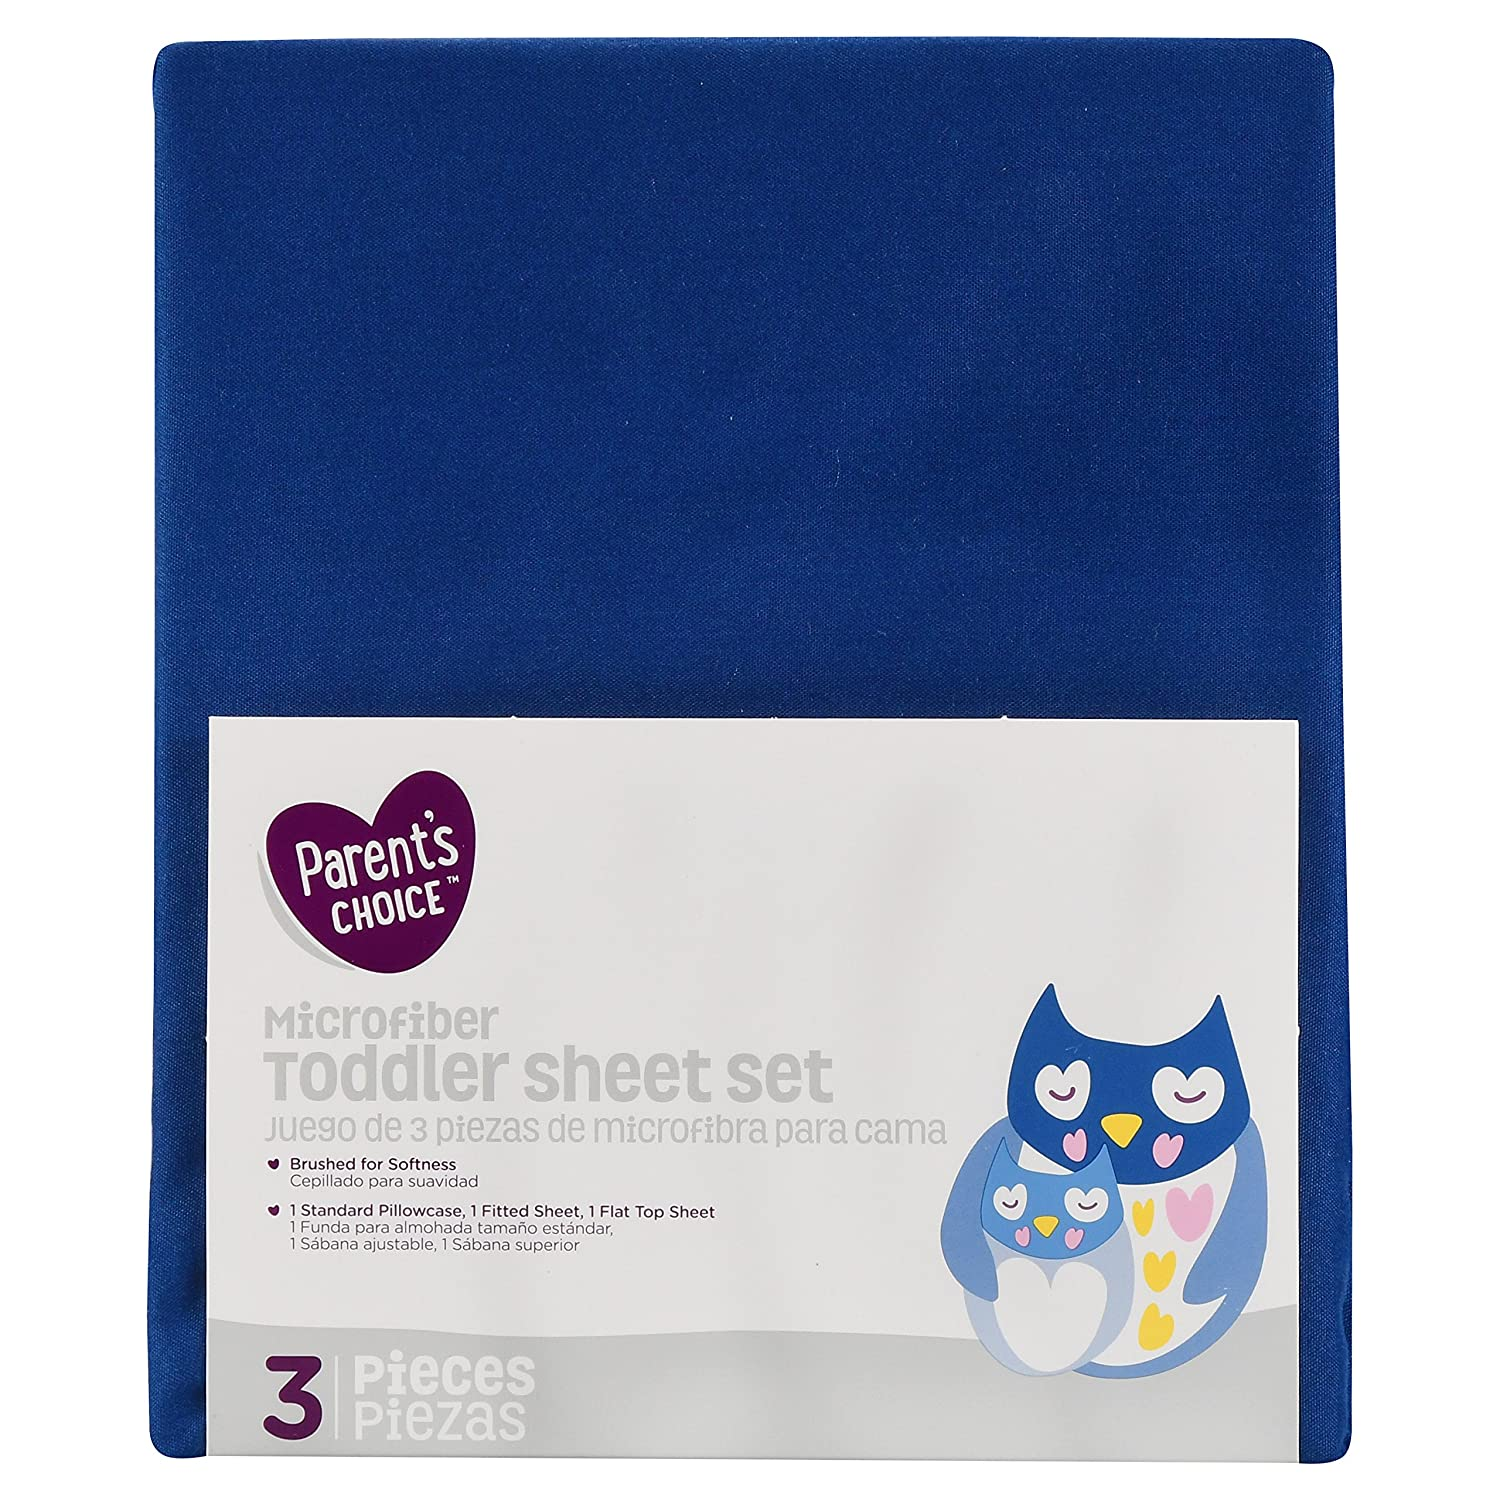 Parent's Choice Toddler Sheet Set, Navy (Blue), 3 Piece Crown Crafts